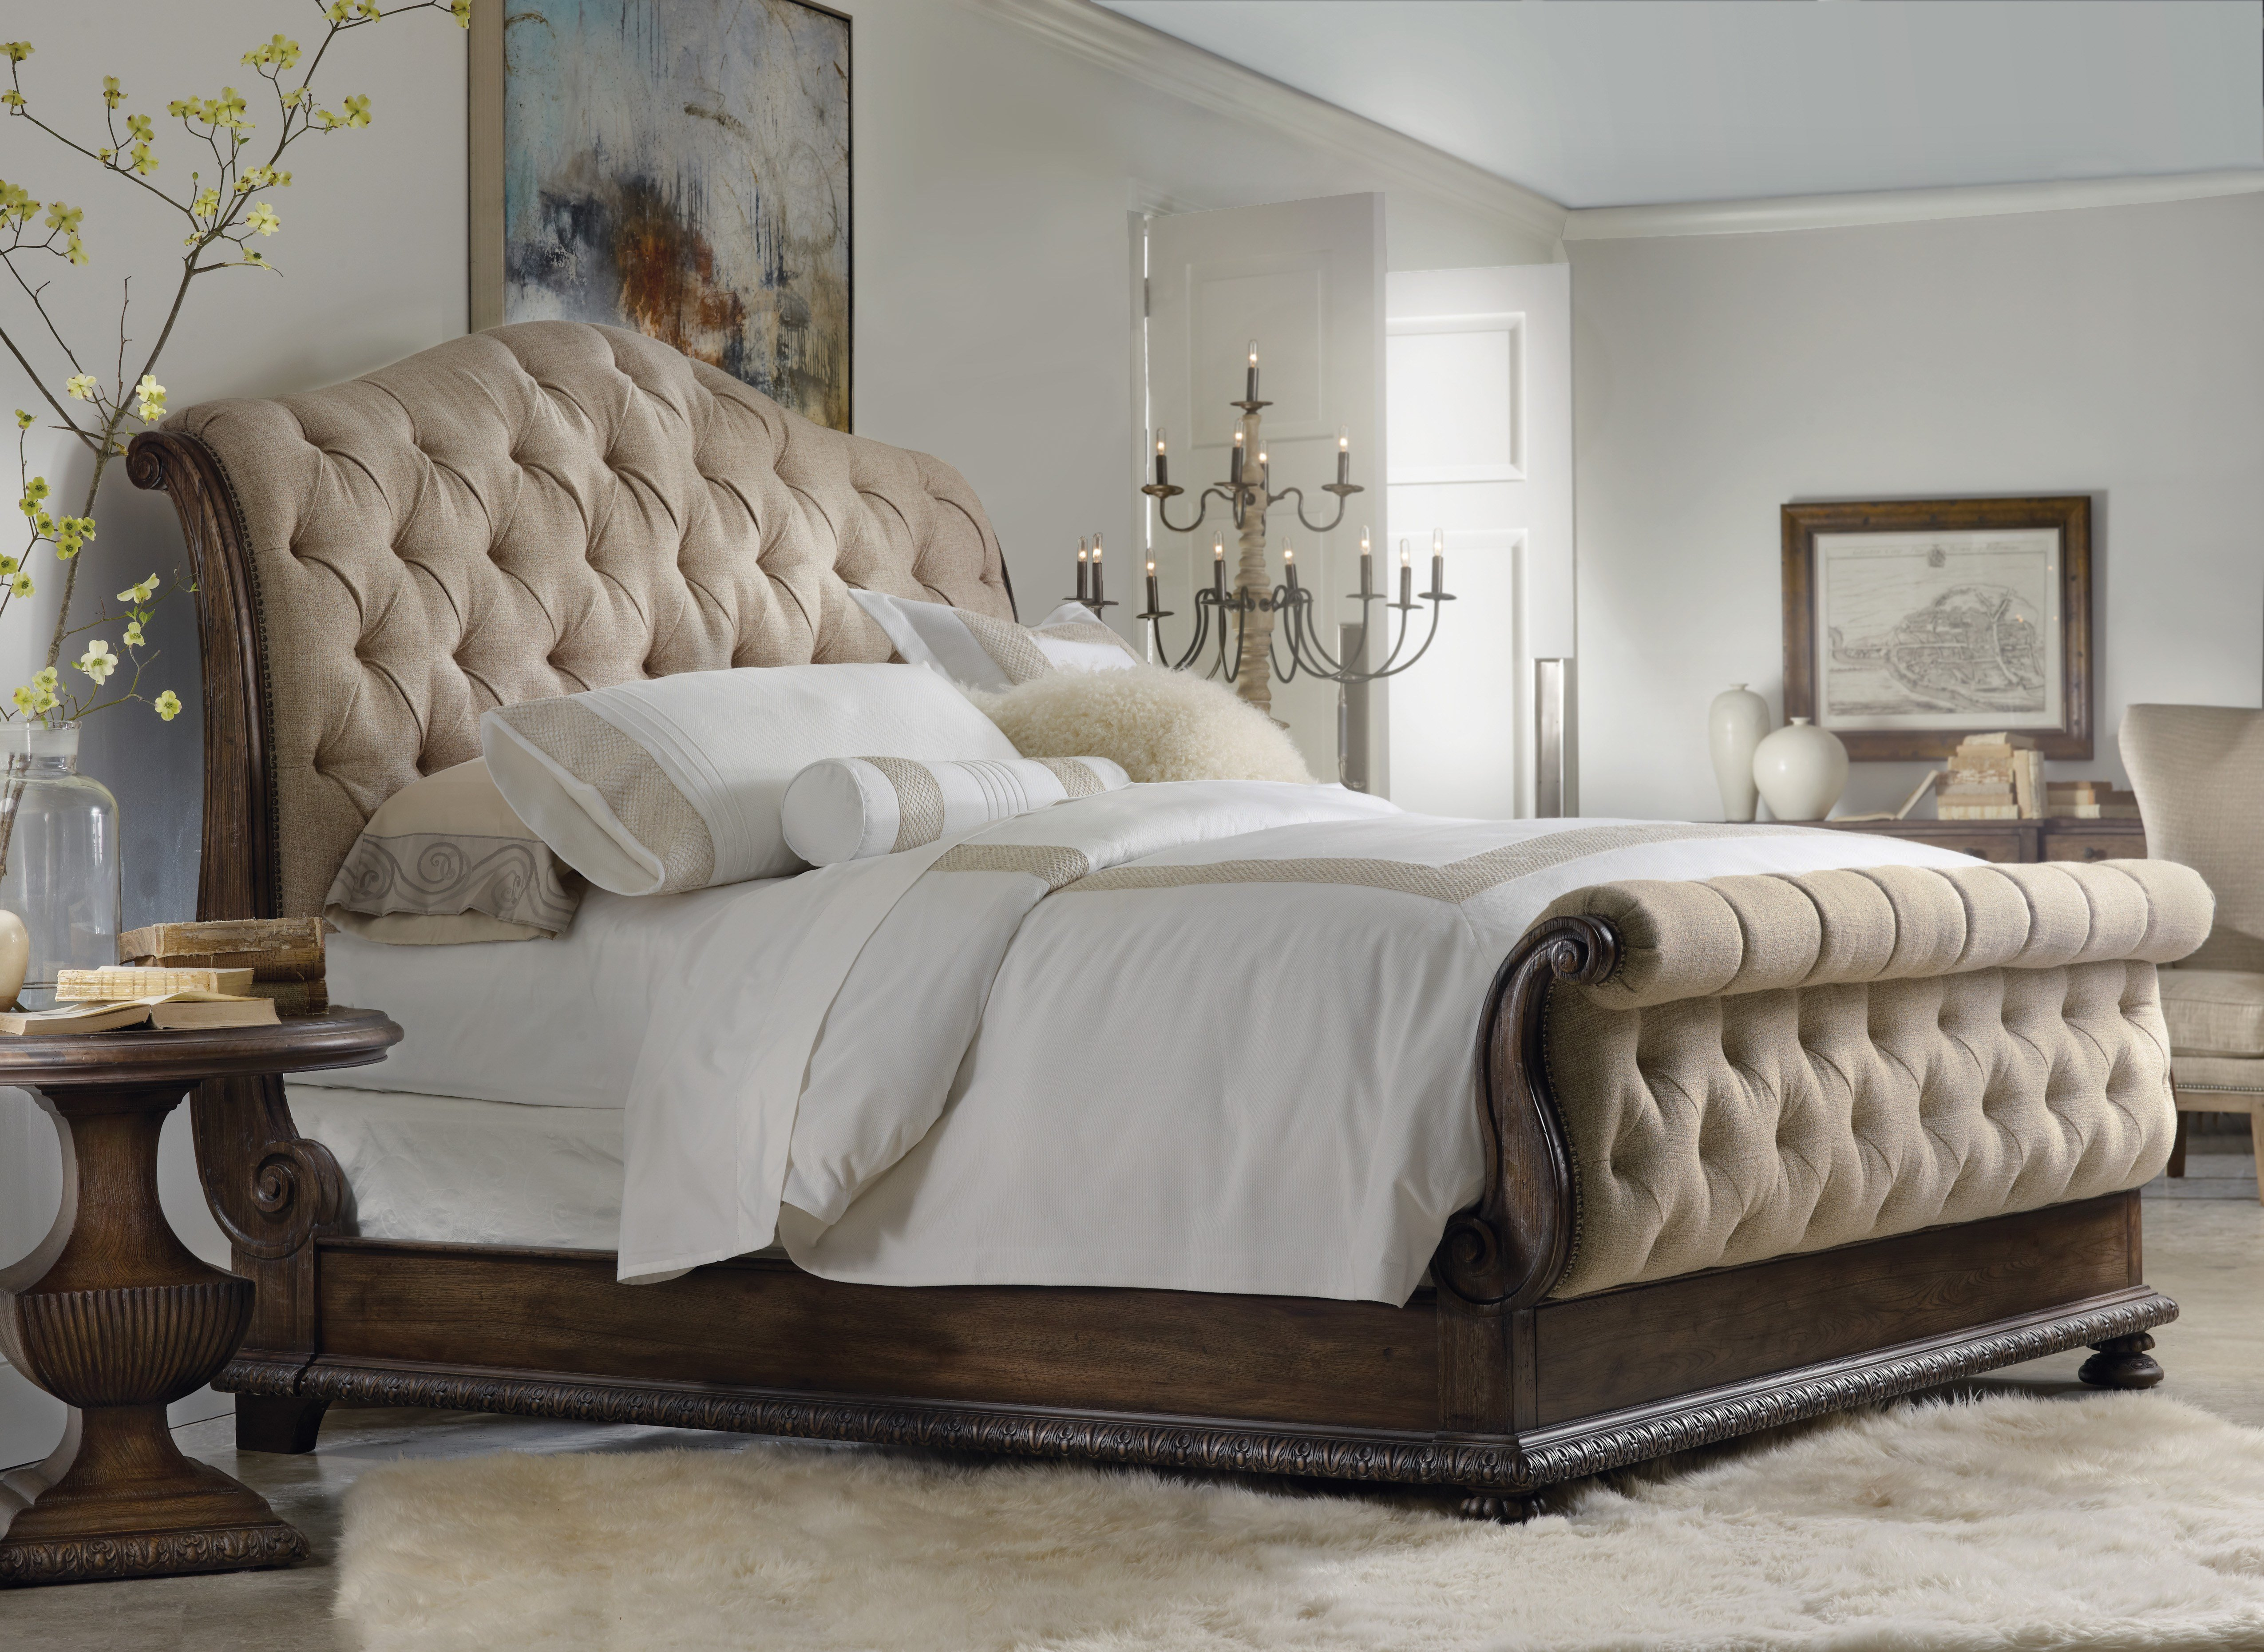 Best Beautiful Bedroom Furniture Gsbh Bedroom Furniture Reviews With Pictures